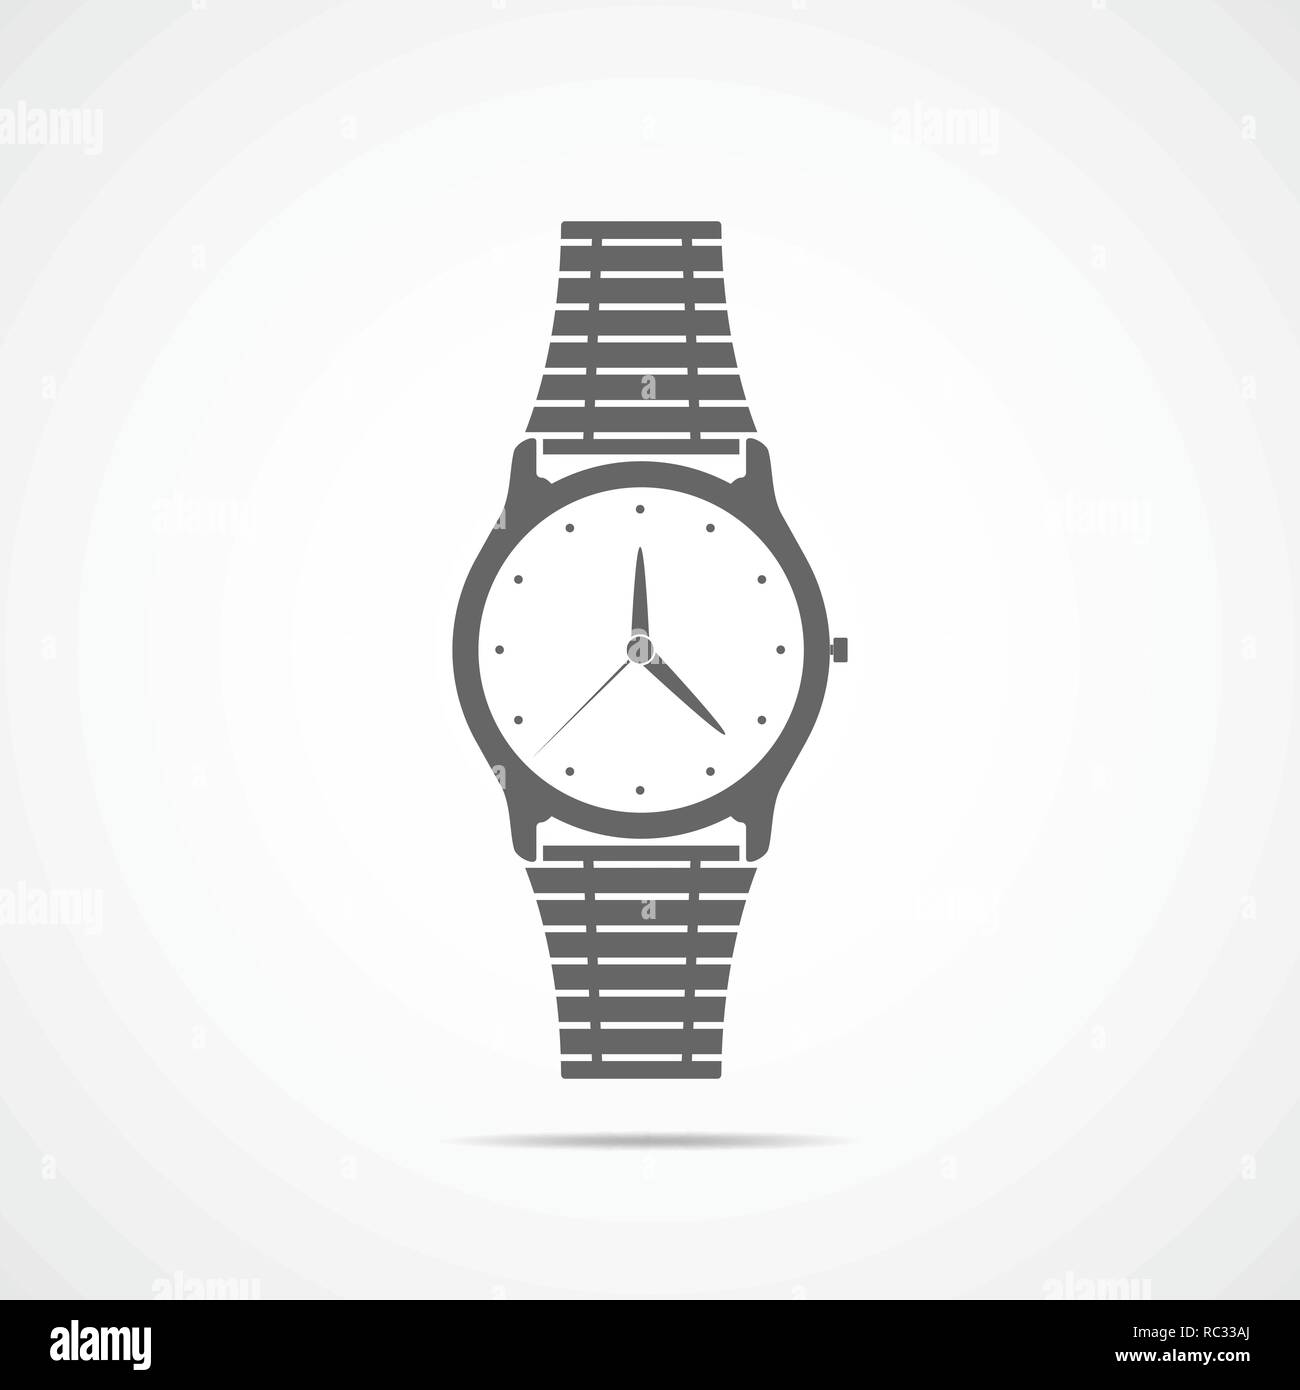 Wristwatch icon in flat design. Vector illustration. Gray wristwatch icon isolated on light background. - Stock Image